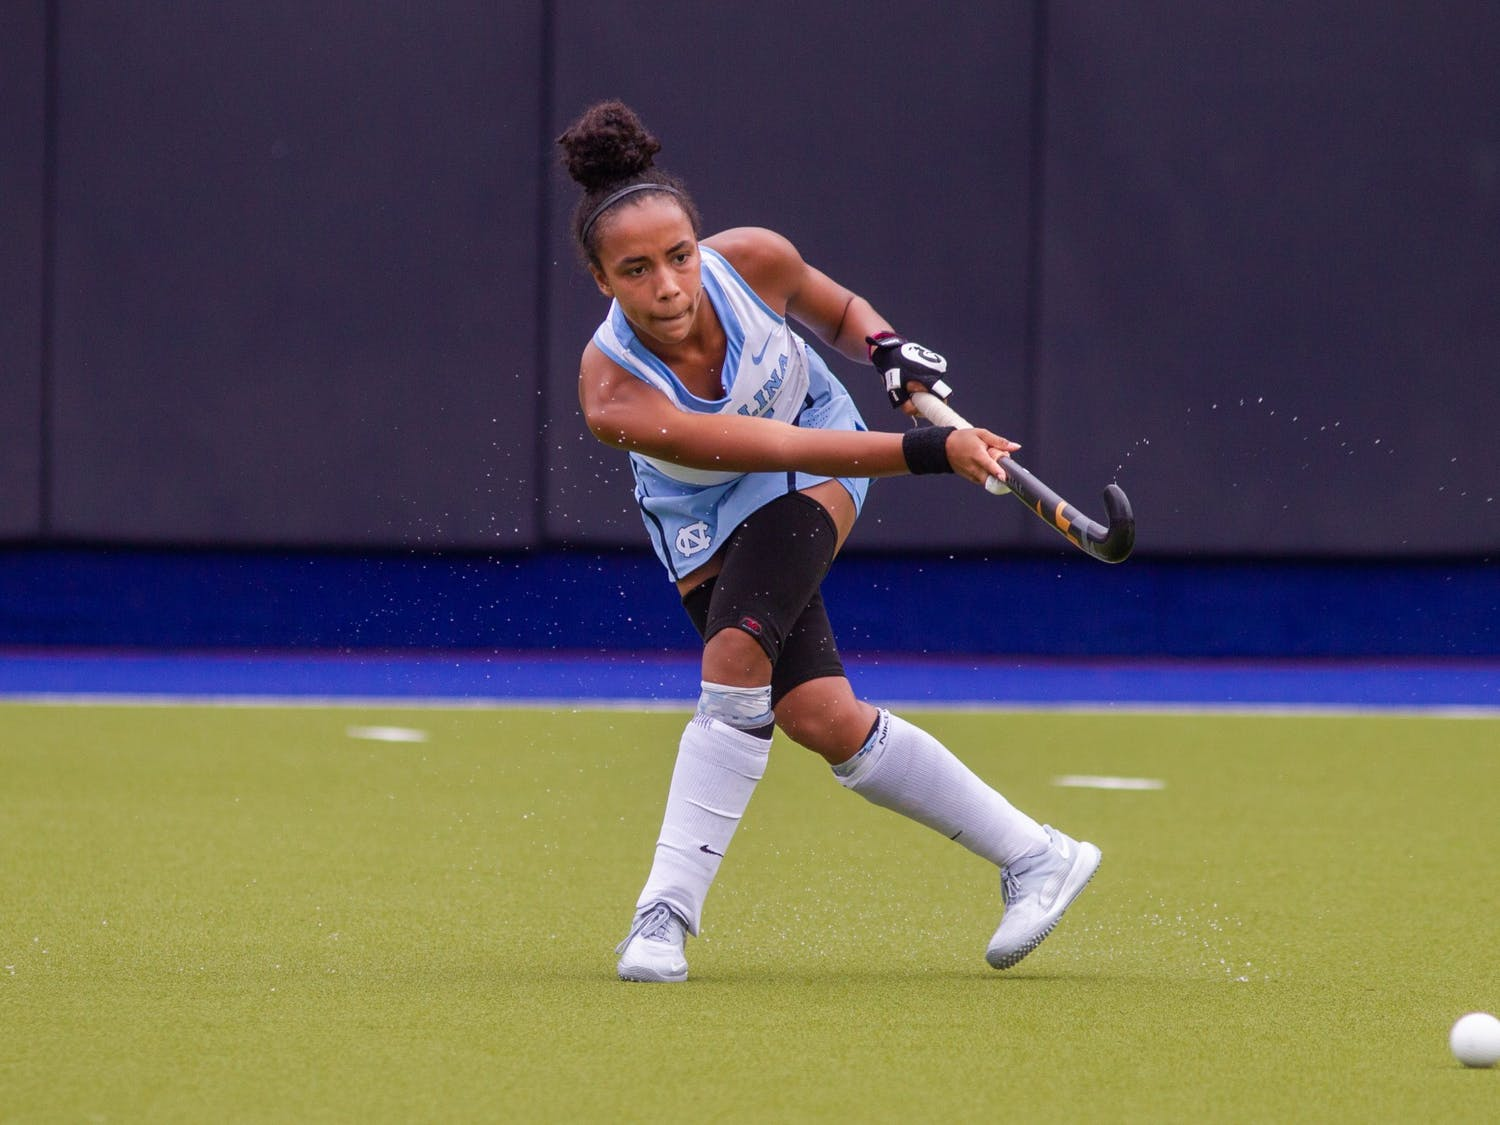 First-year midfielder Kiersten Thomassey (35) strikes the ball during the game against Virginia on Monday, Oct. 12th, 2020 at Shelton Stadium. UNC won 2-1.